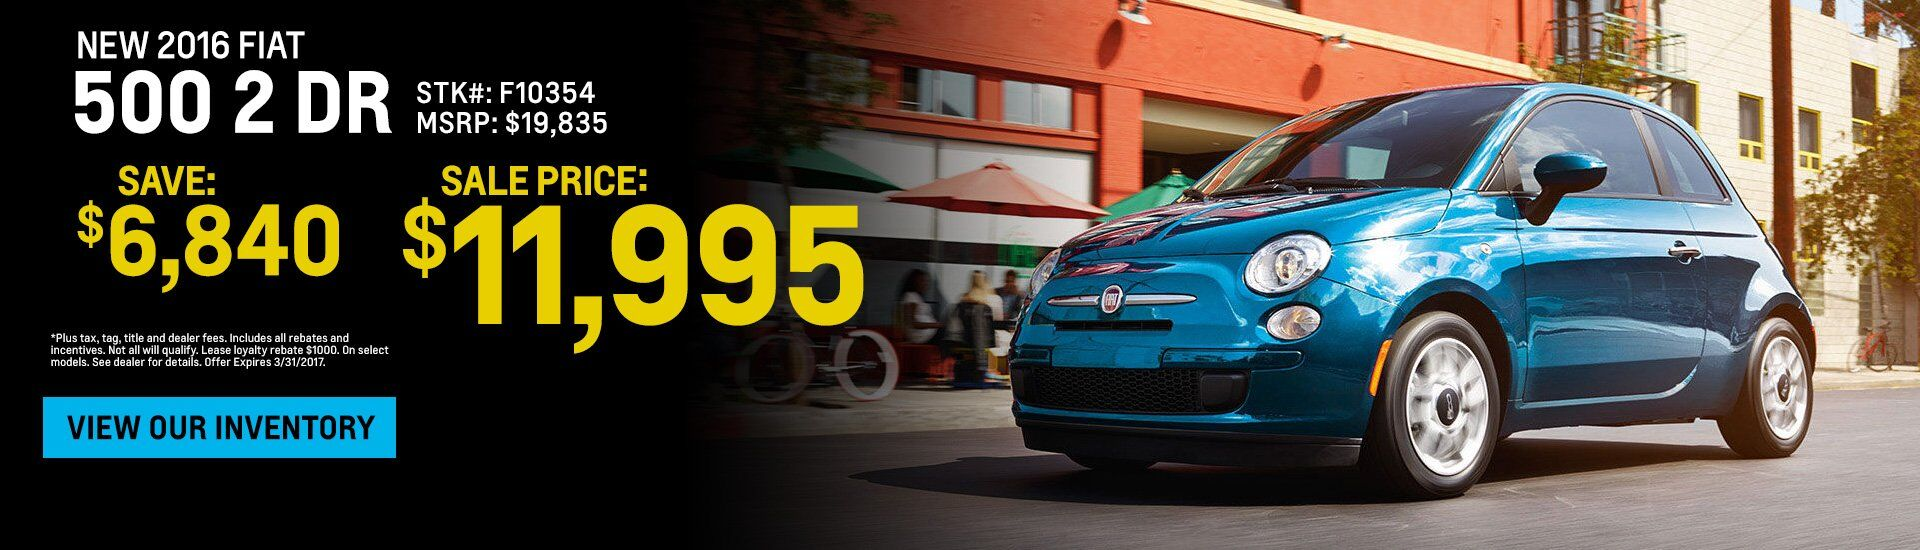 new 2016 Fiat 500 sale Rochester NY